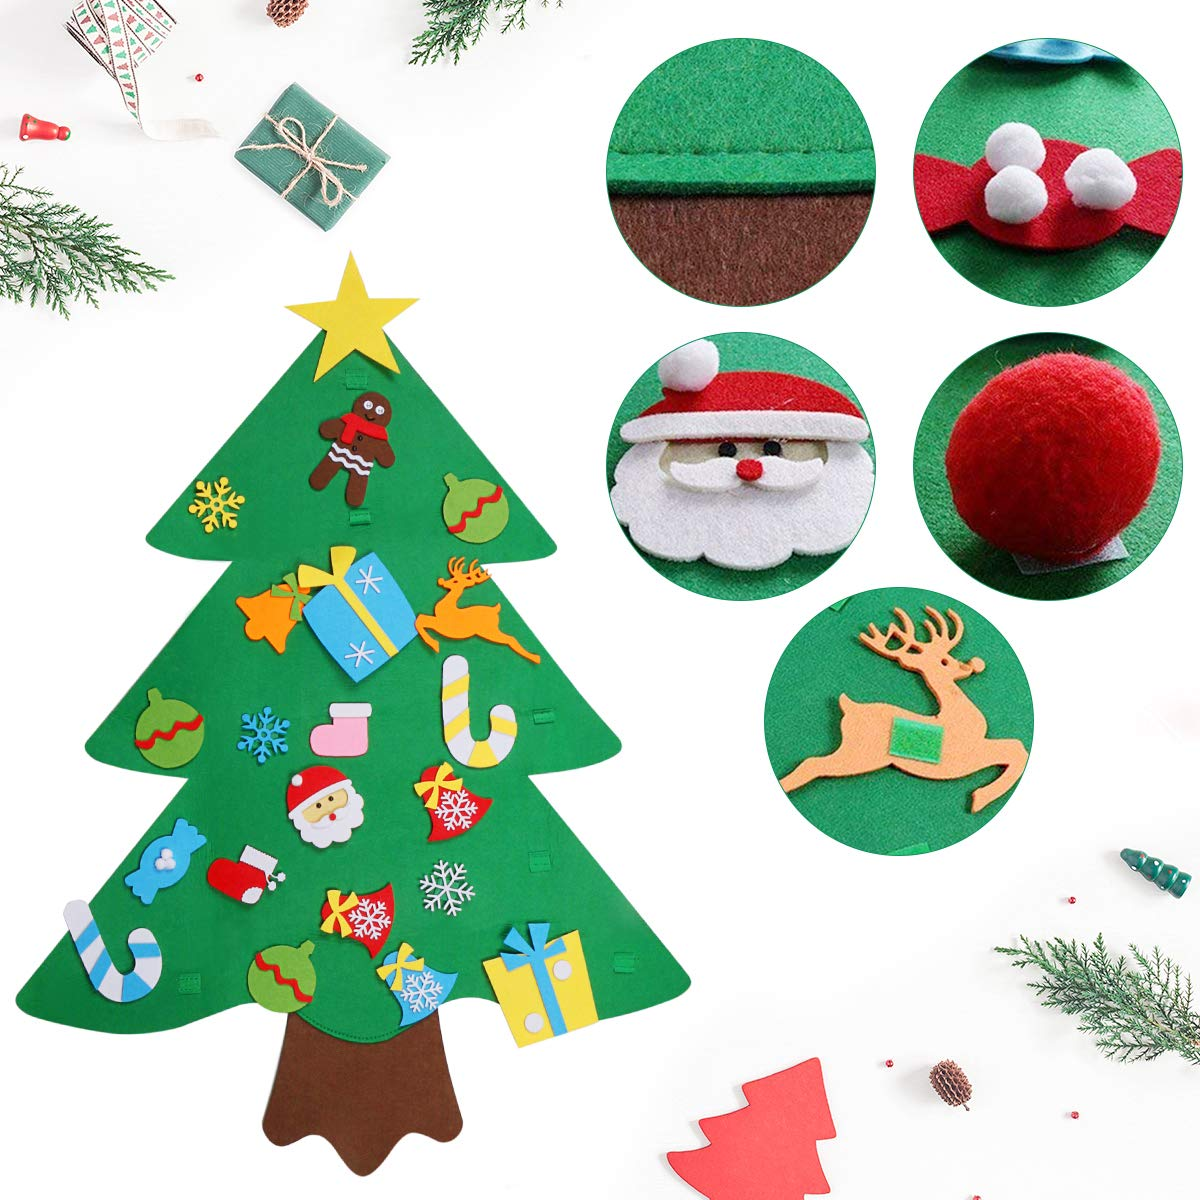 WOSTOO DIY Christmas Tree, Felt Christmas Tree Set Glitter Edition 32 Pieces DIY Decoration Hanging Decor Removable Ornaments for Children Xmas Gifts New Year Door Wall Hanging Decorations